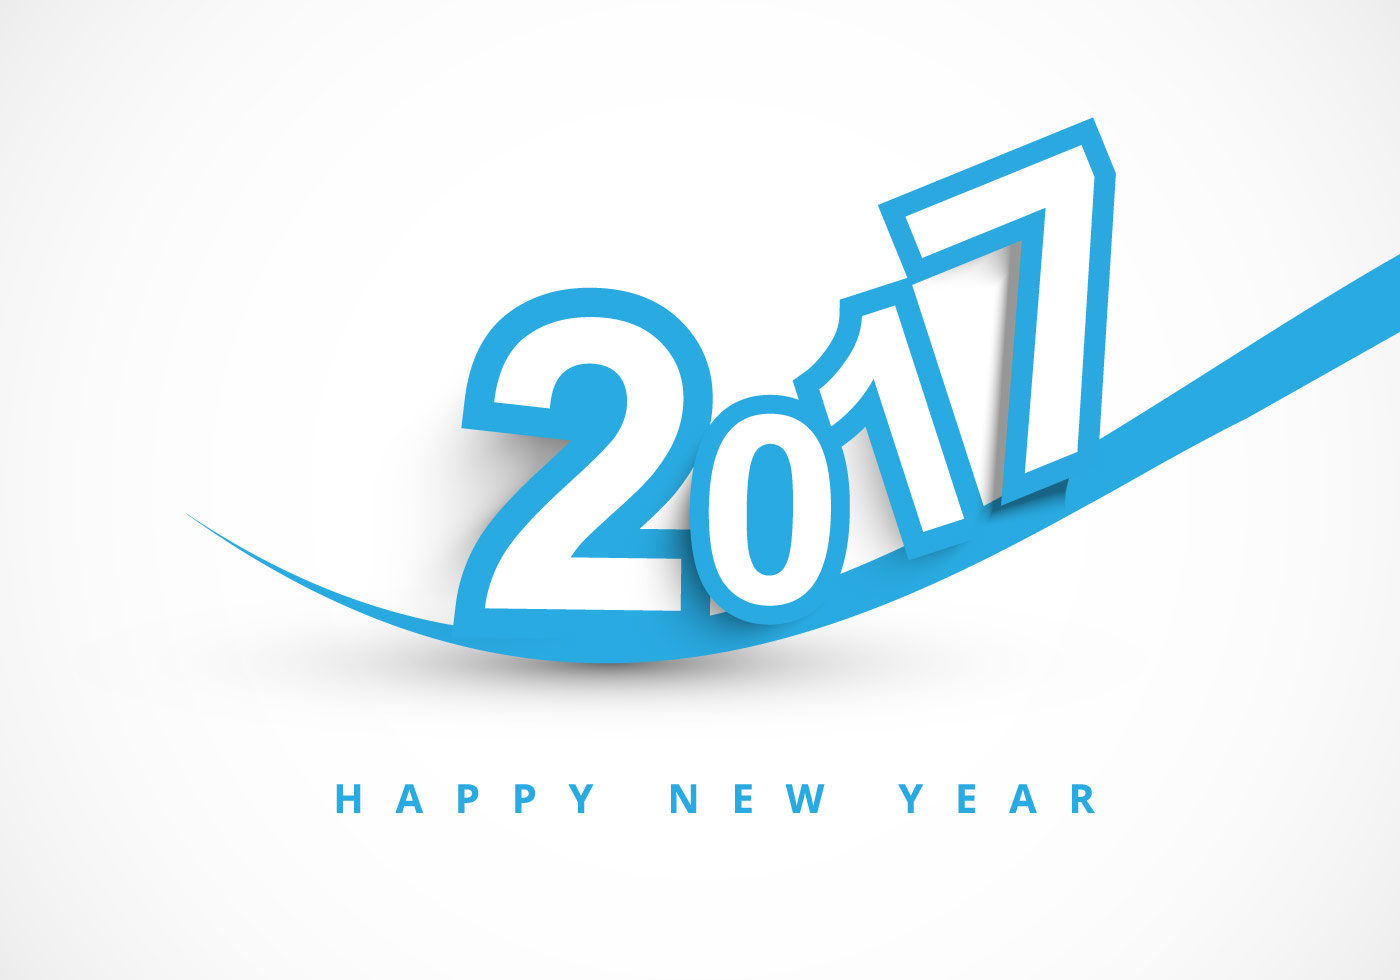 2017 happy new year greeting card download free vector art stock graphics images